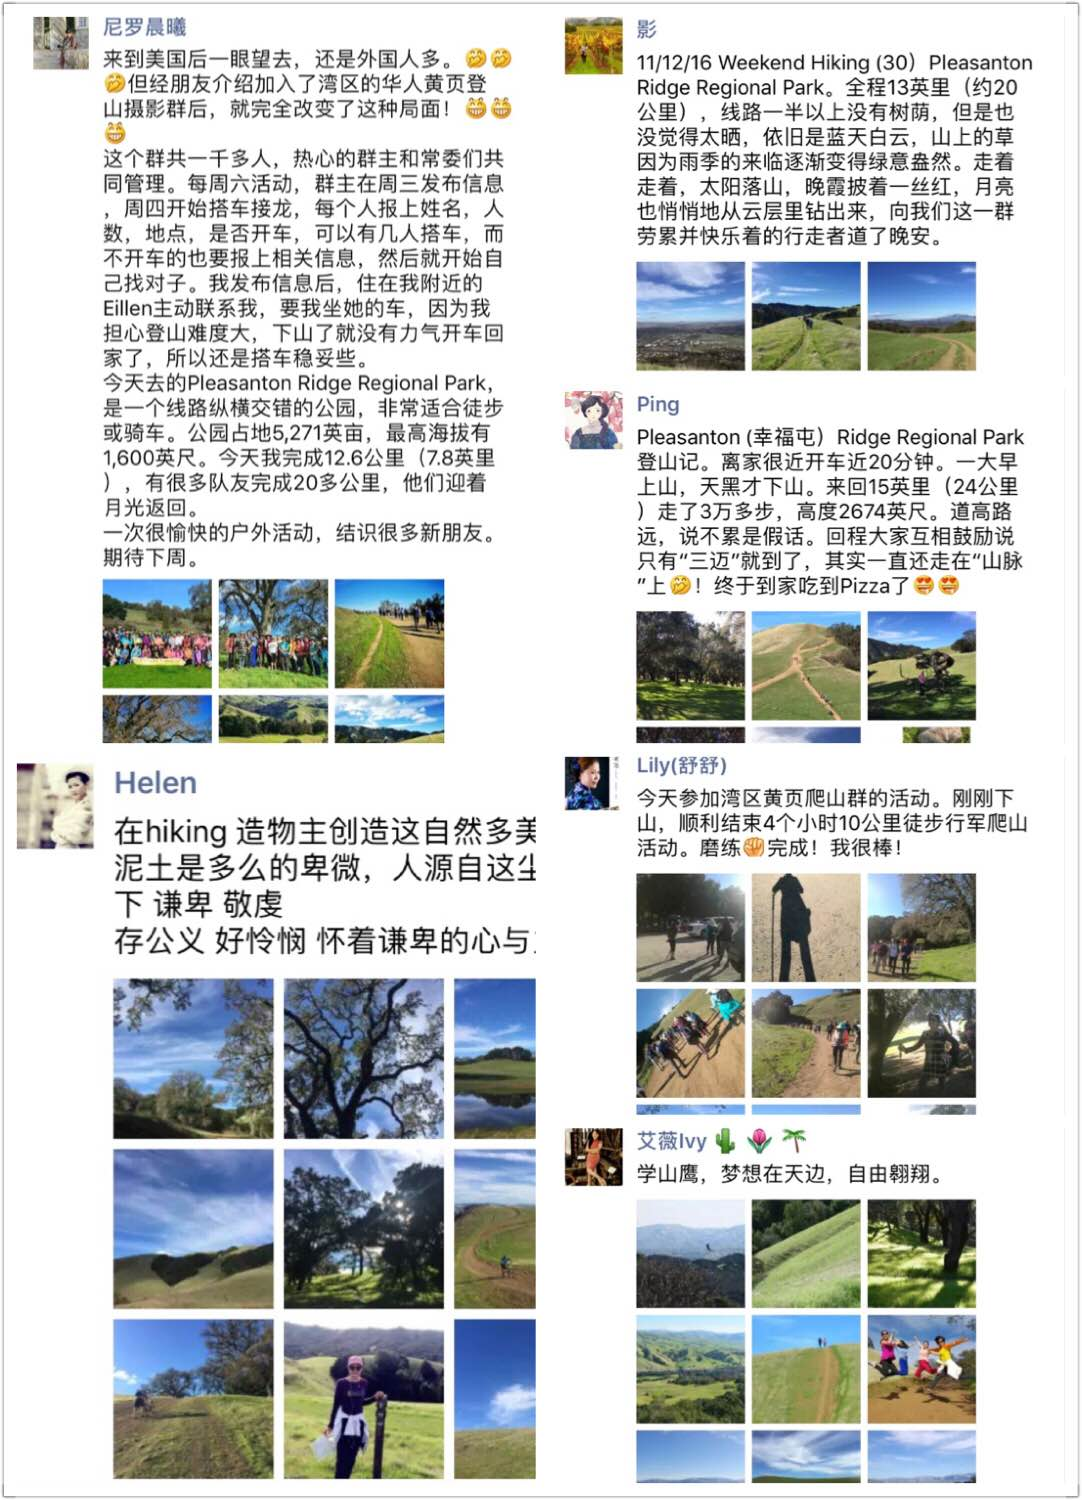 pleasanton-ridge-reginal-park_wechat02